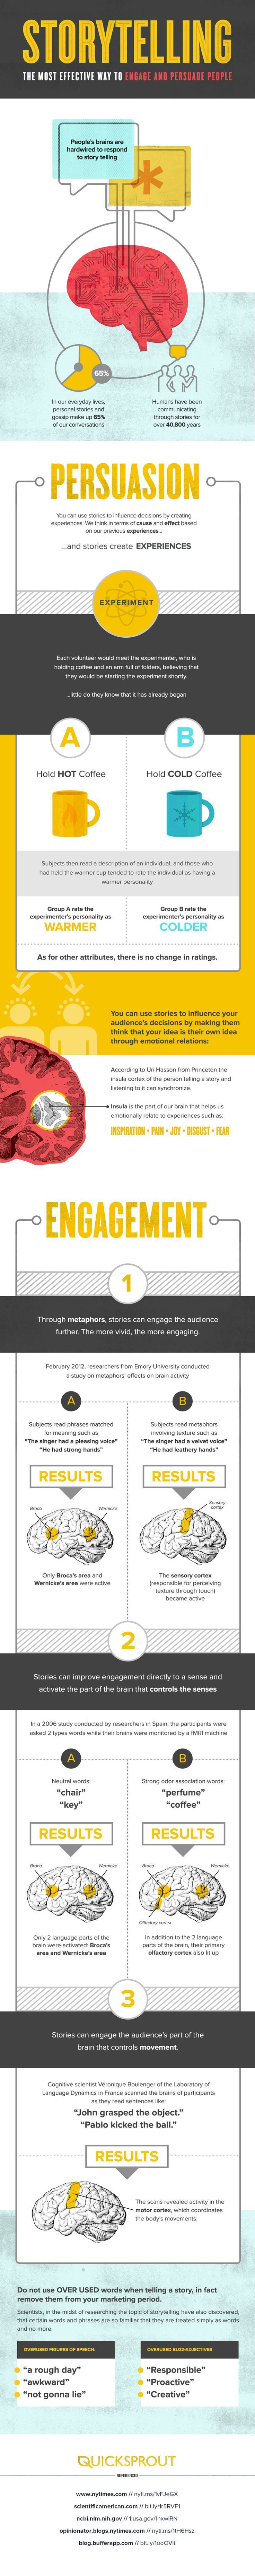 http://dingox.com Storytelling The Most Effective Way to Engage and Persuade People #infographic